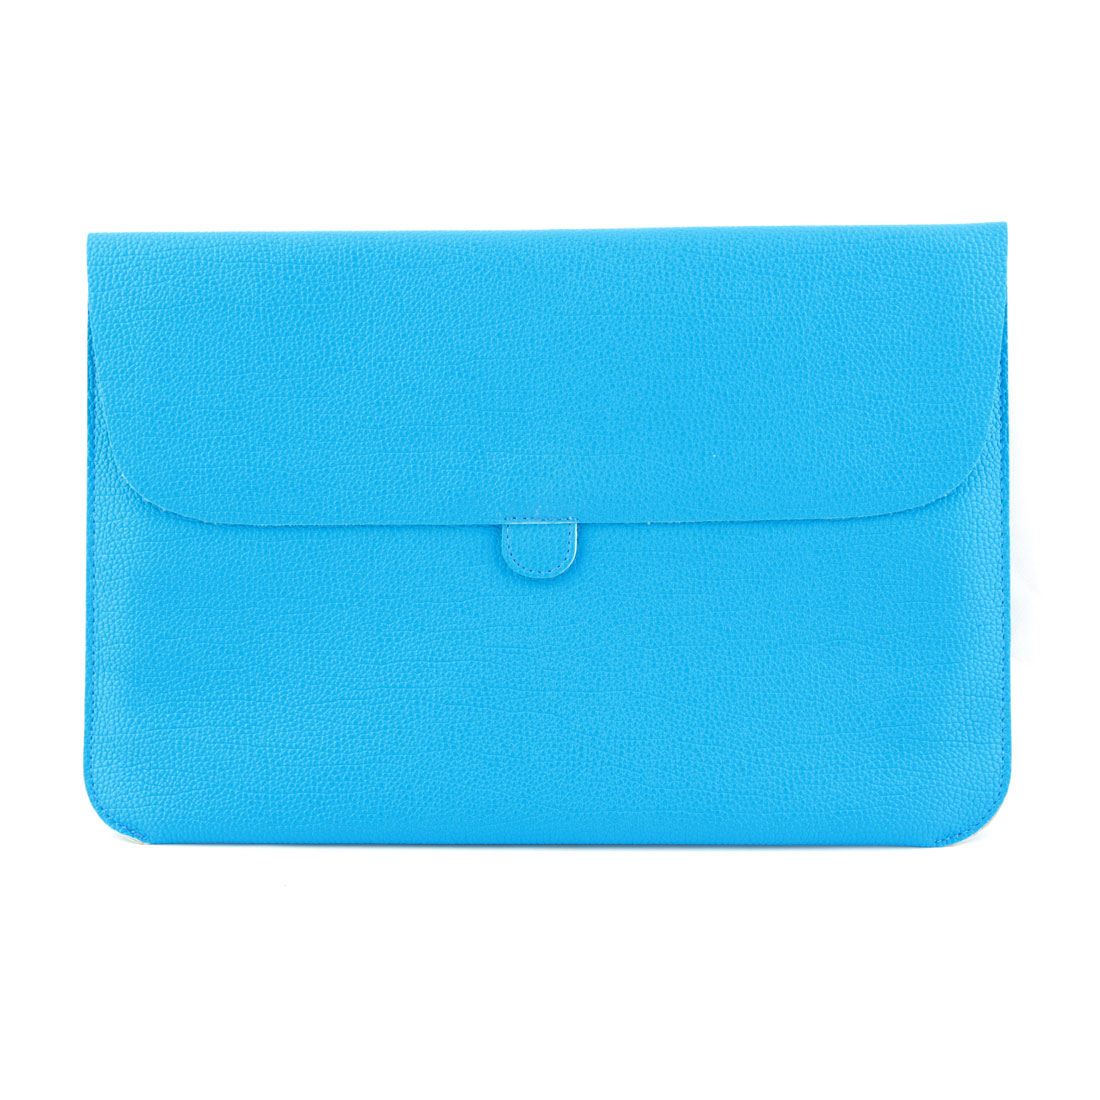 PC Computer PU Leather Sleeve Case Puoch Cover Sky Blue for Macbook Air 11 Inch